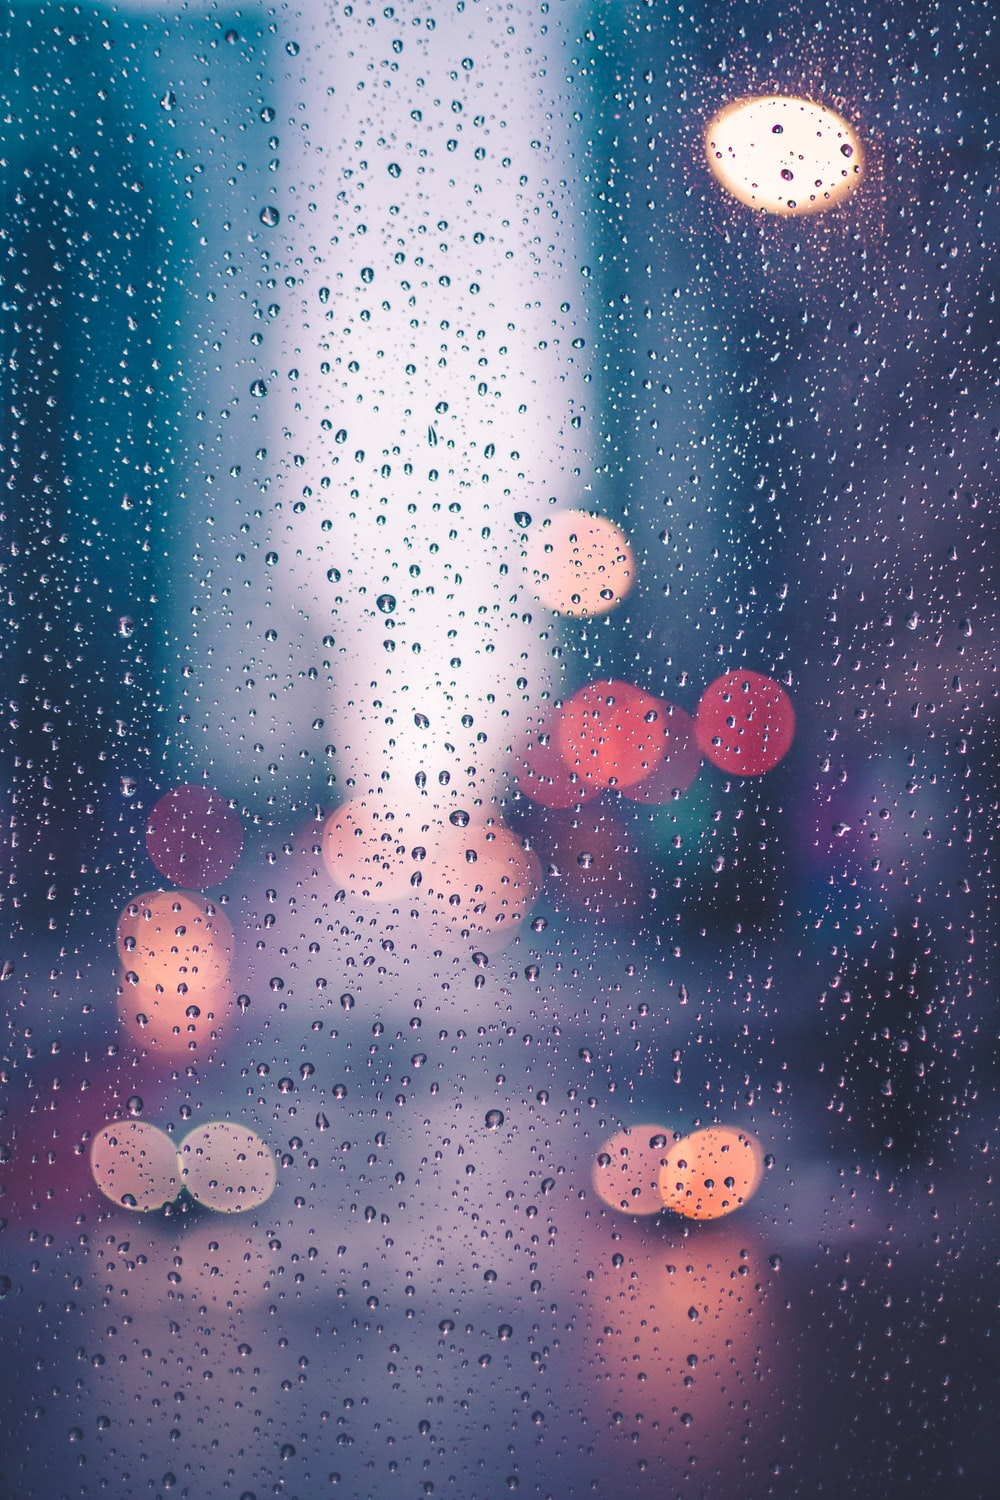 350 Rain Wallpapers [HD] Download Images Stock Photos On 1000x1500